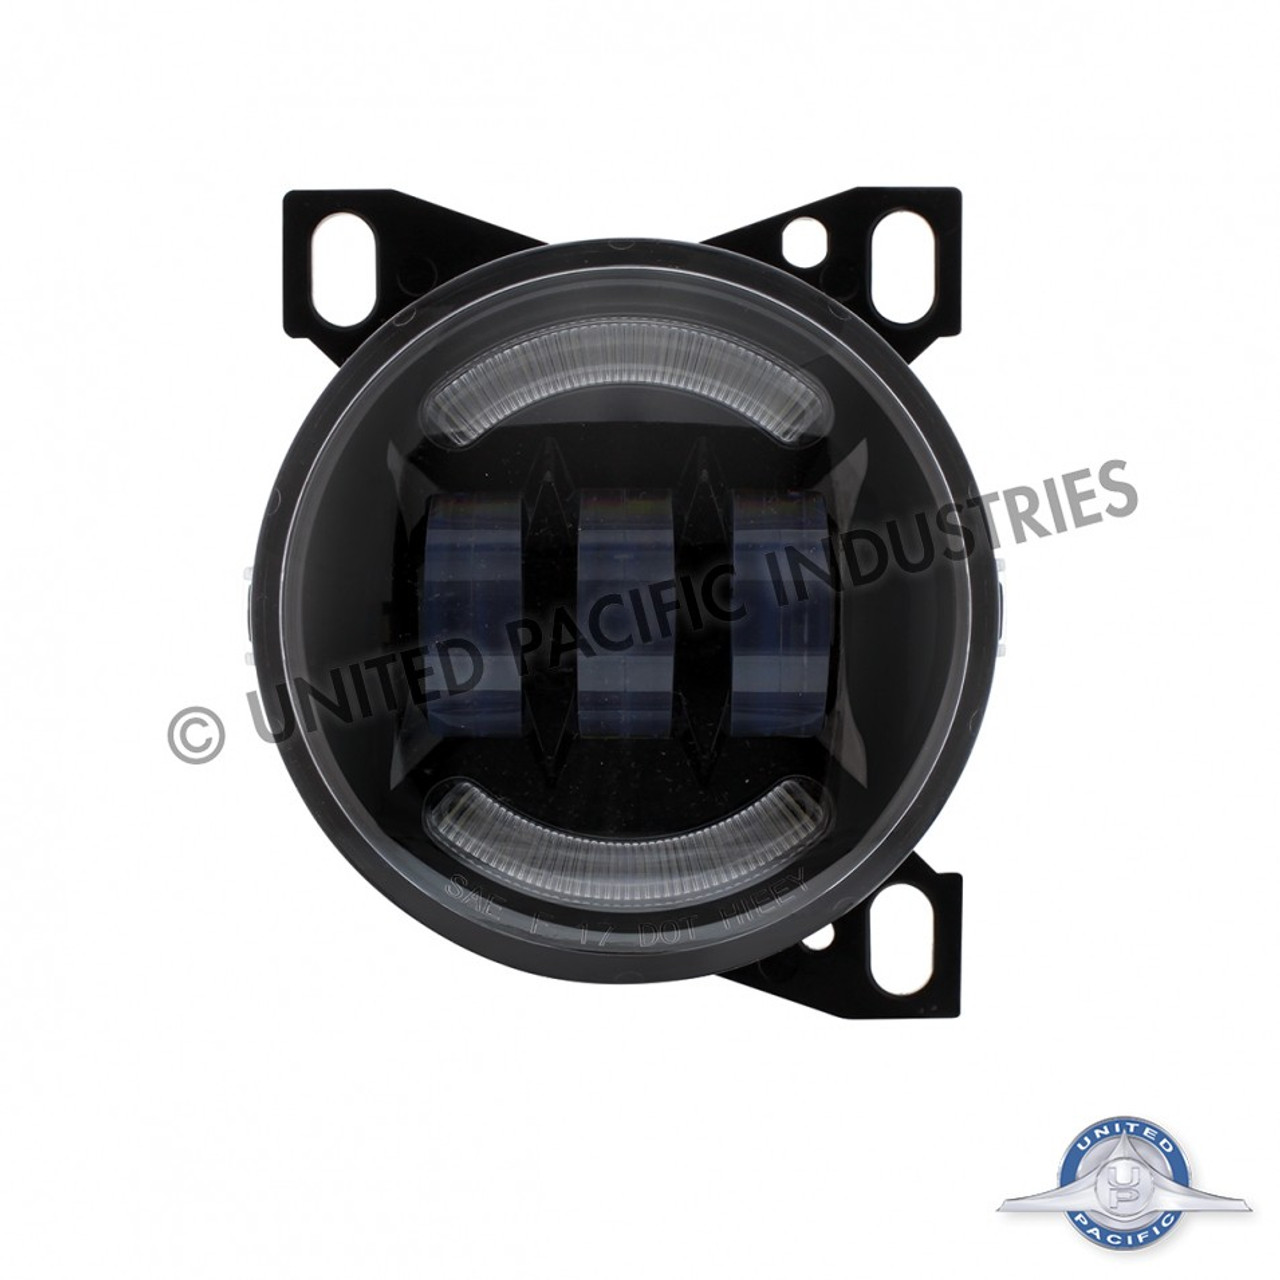 small resolution of united pacific 4 1 4 black round led fog light with led position light